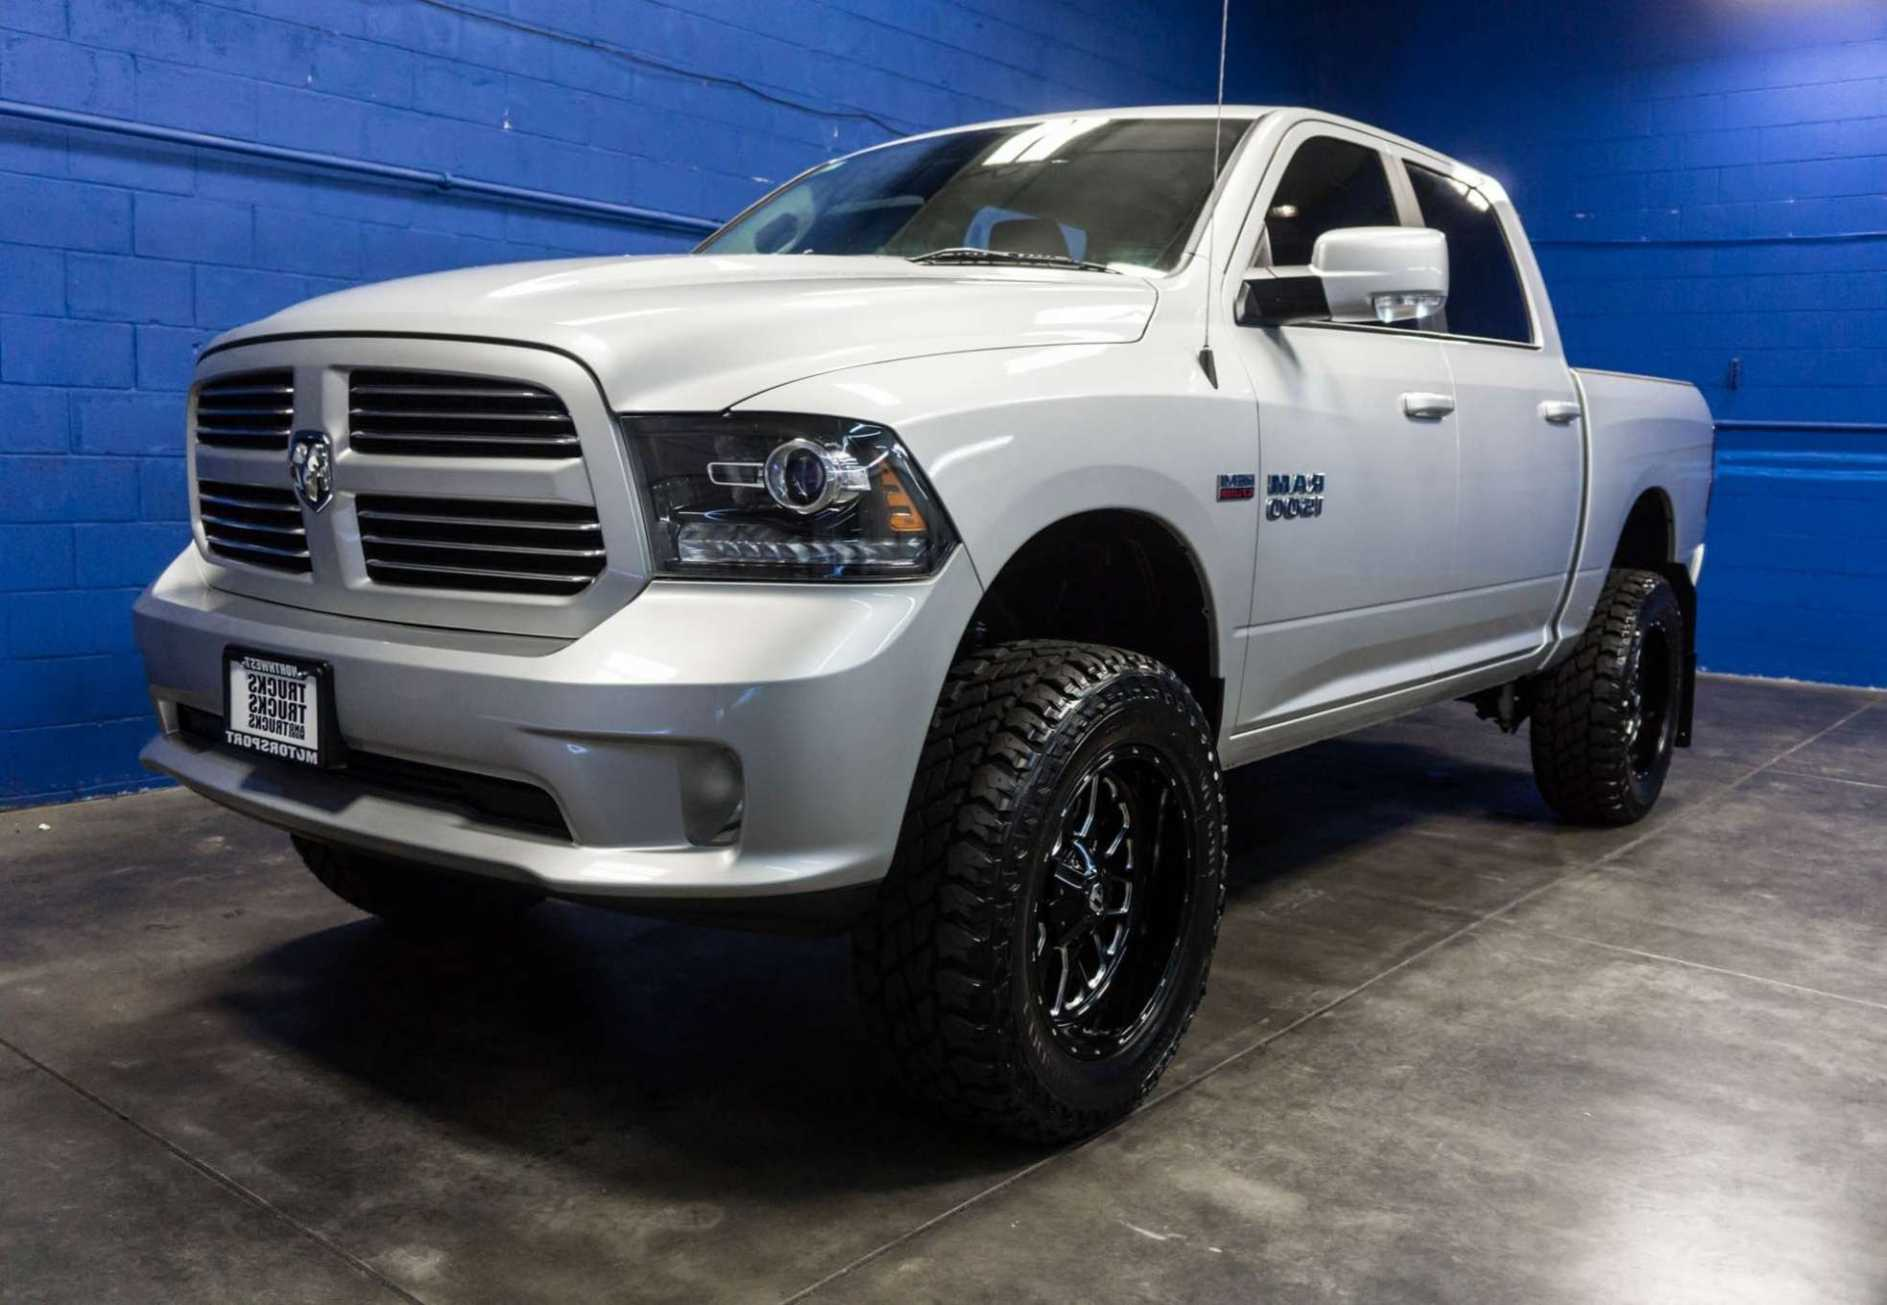 63 The 2020 Dodge Ram 1500 Pictures